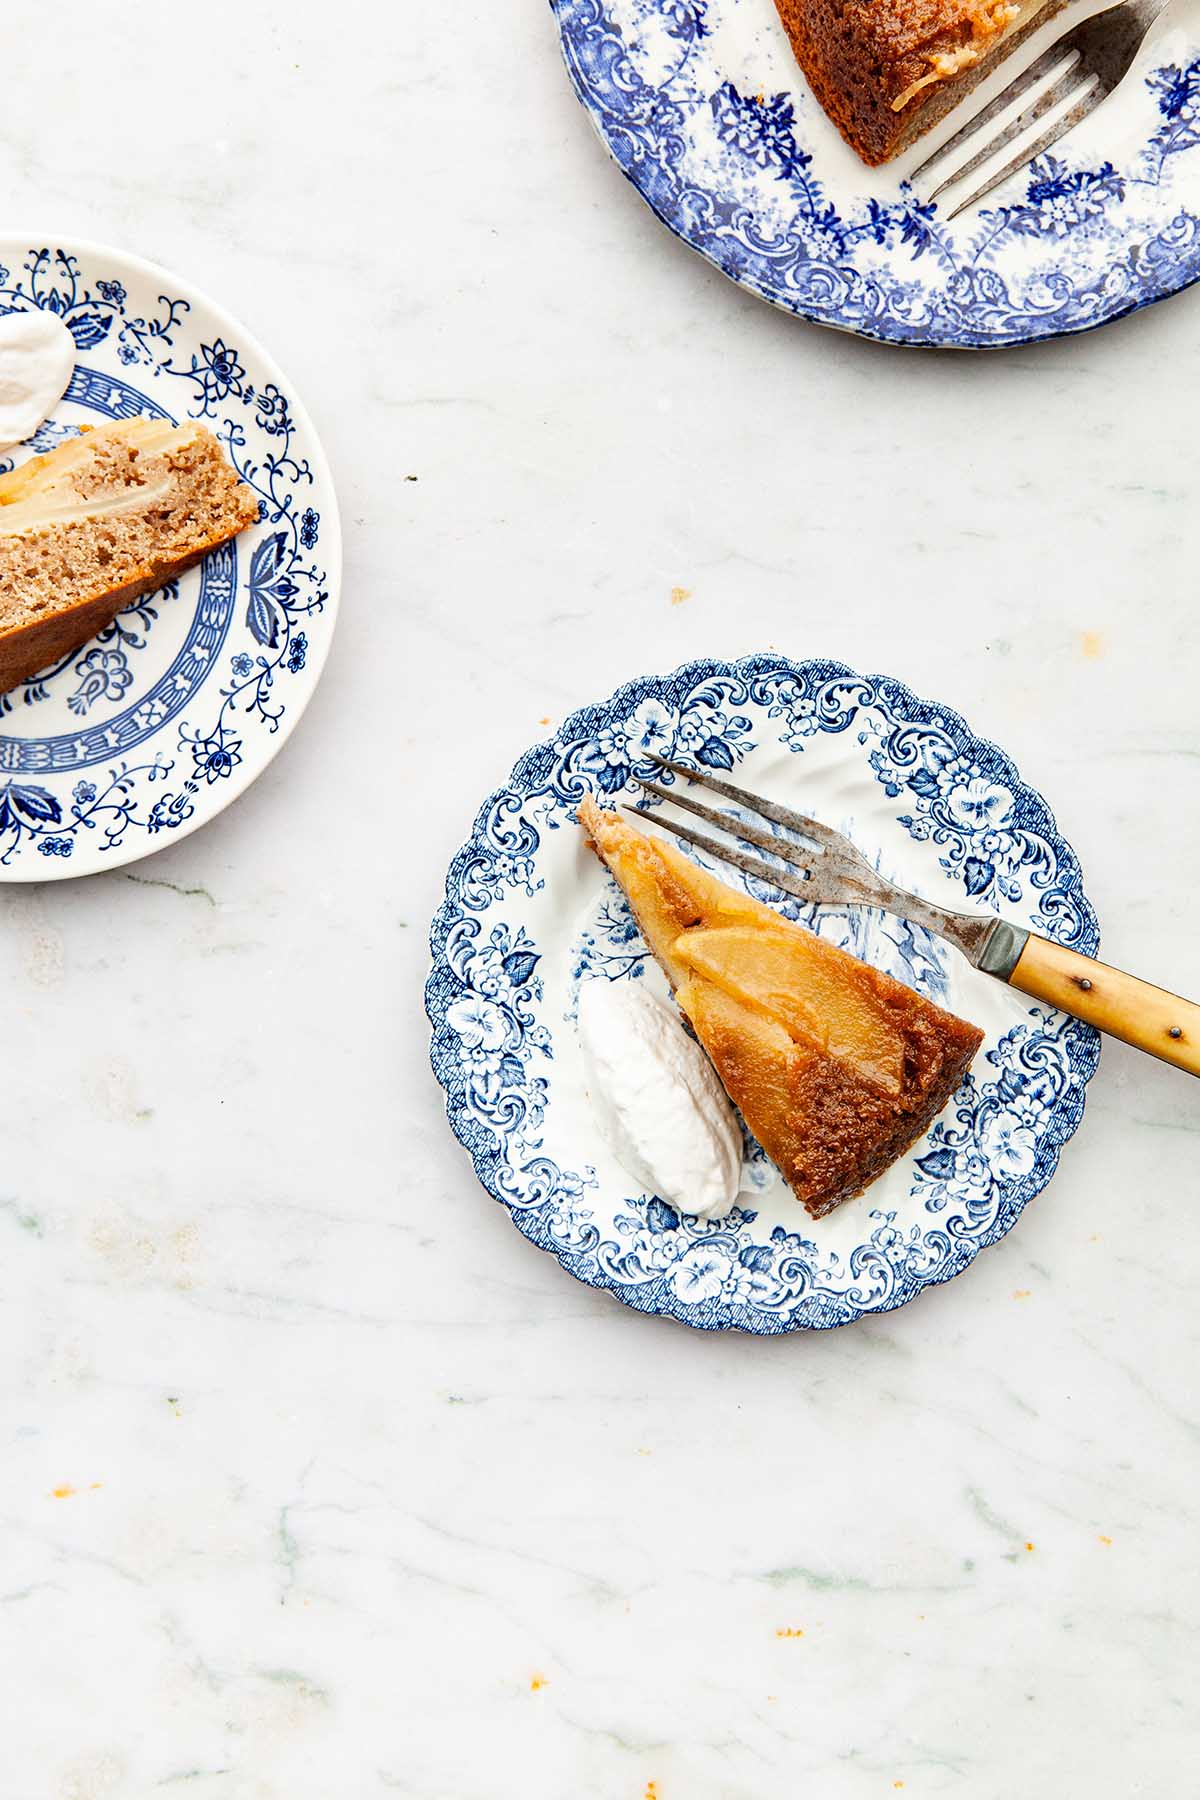 Overhead image of slices of chai cake on blue and white plates.